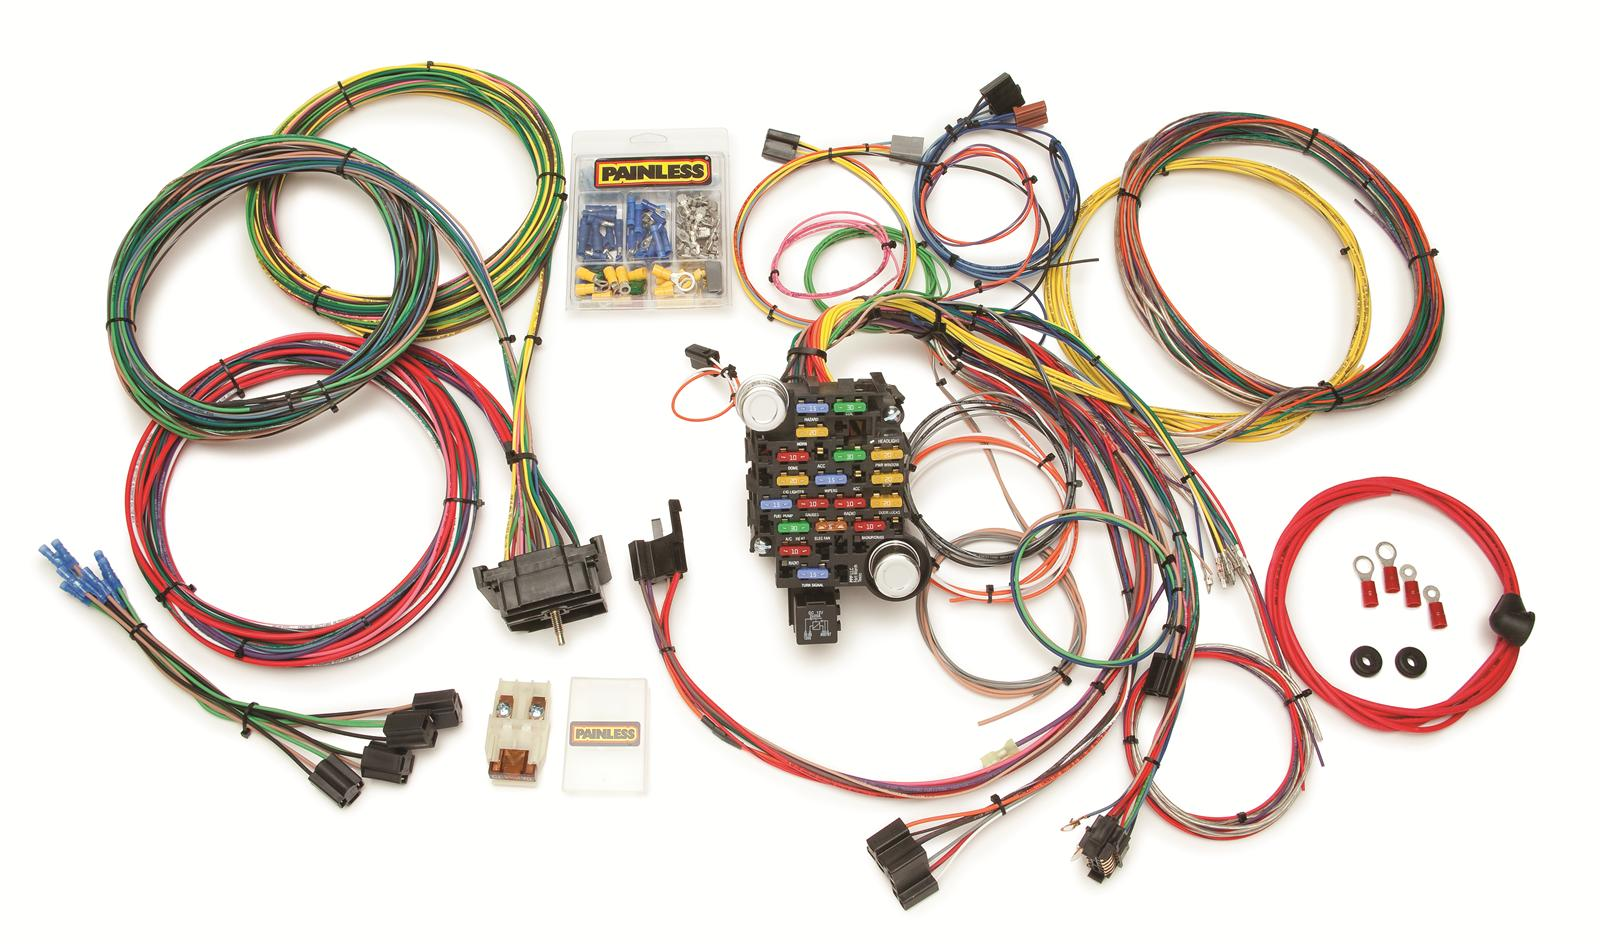 prf 10206_xl painless performance gmc chevy truck harnesses 10206 free wiring harness parts at n-0.co